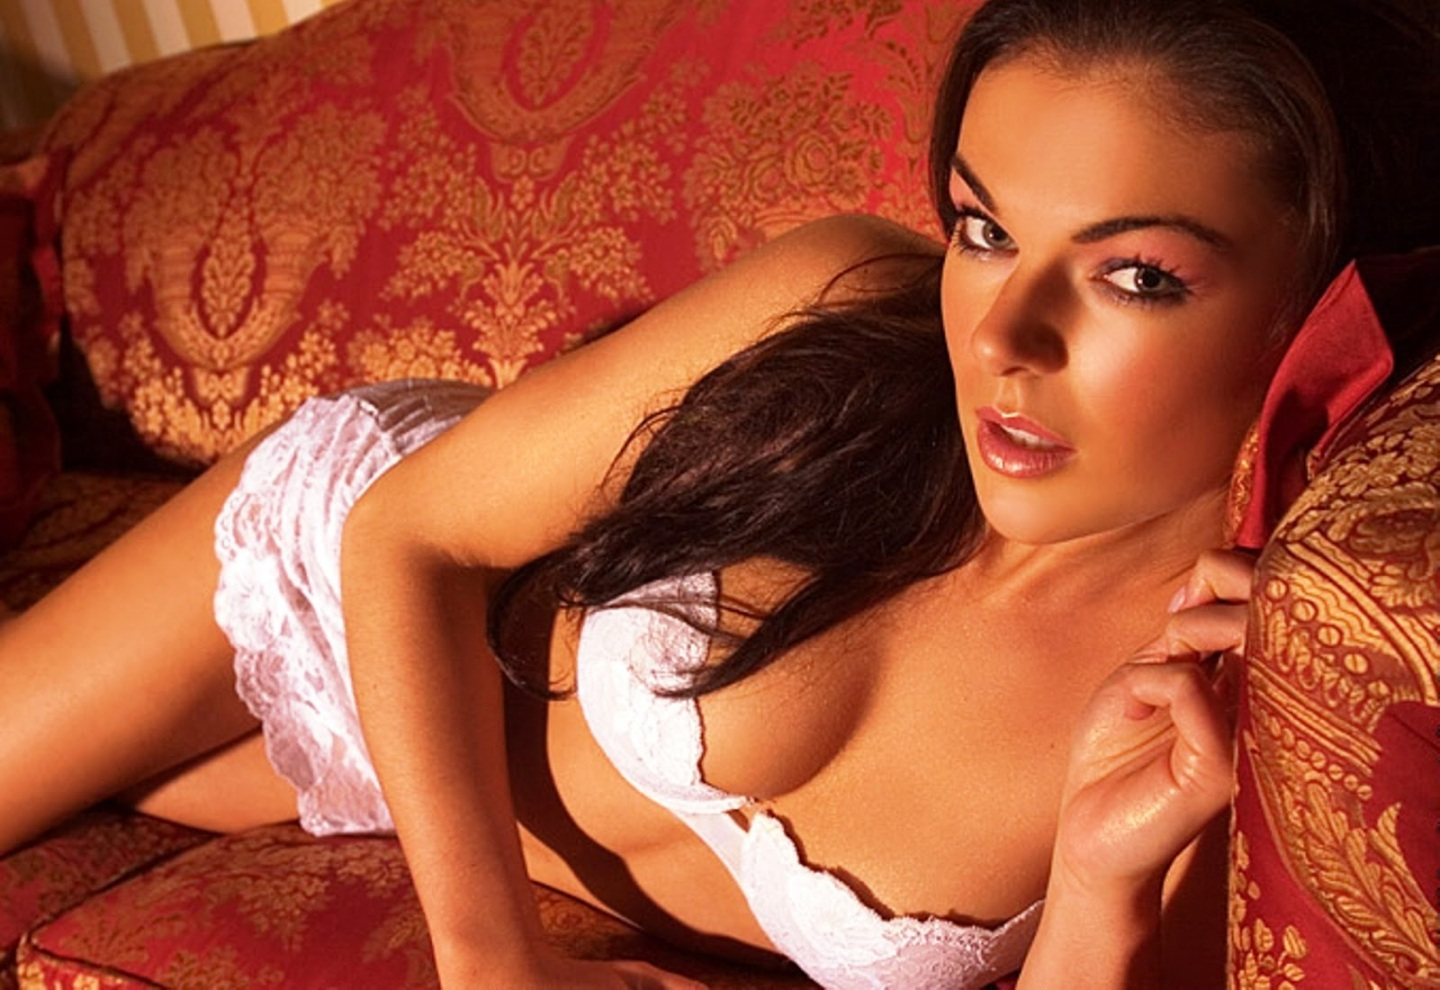 Playmates women for dating